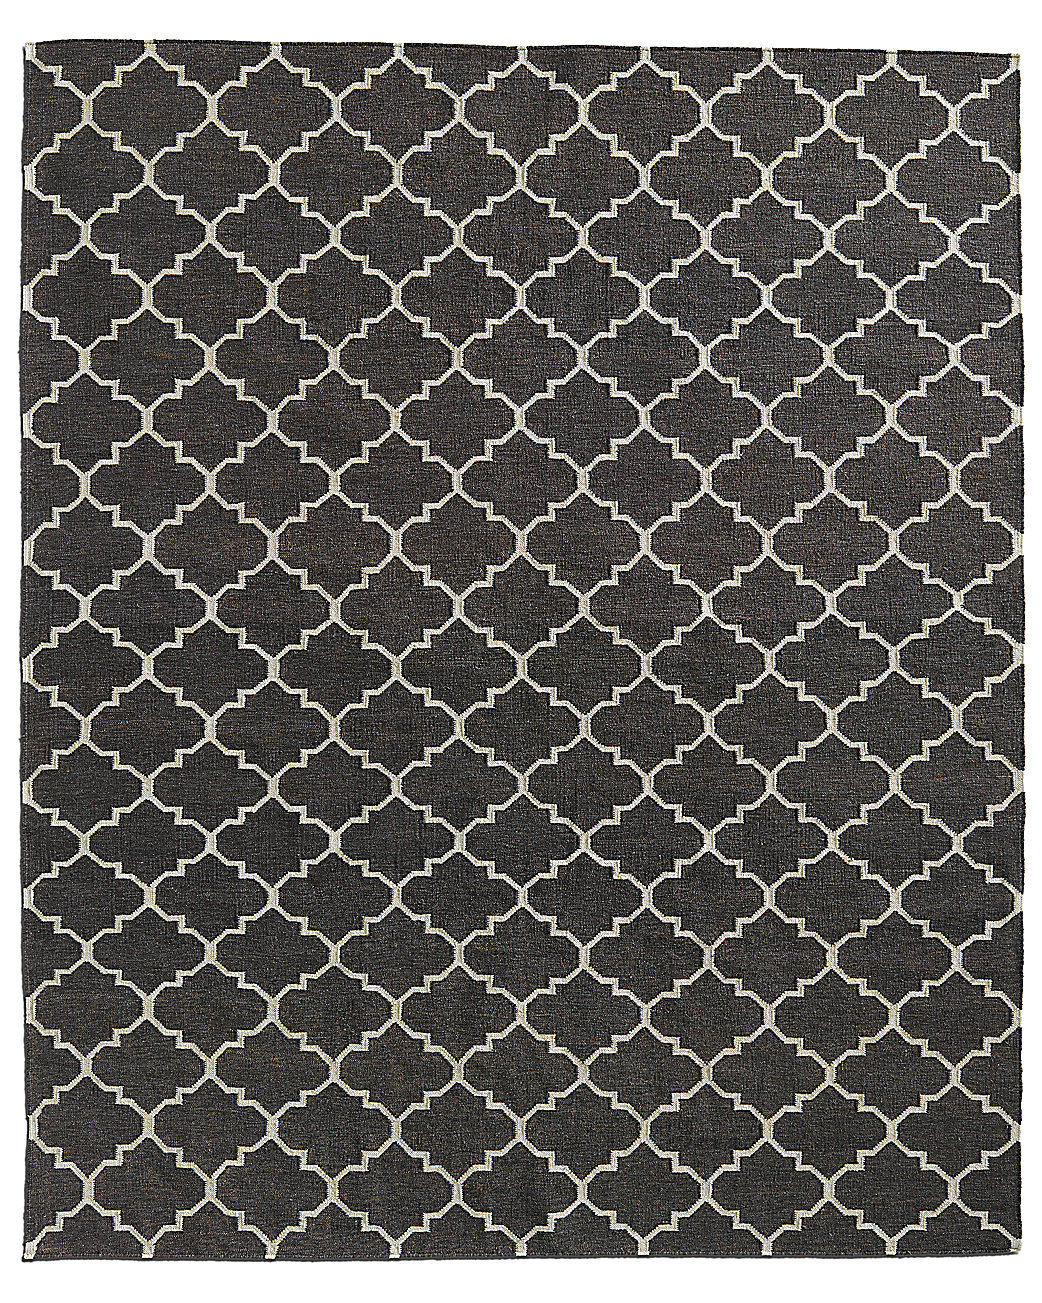 Hand-Knotted Moroccan Tile Flatweave Outdoor Rug - Charcoal/Ivory